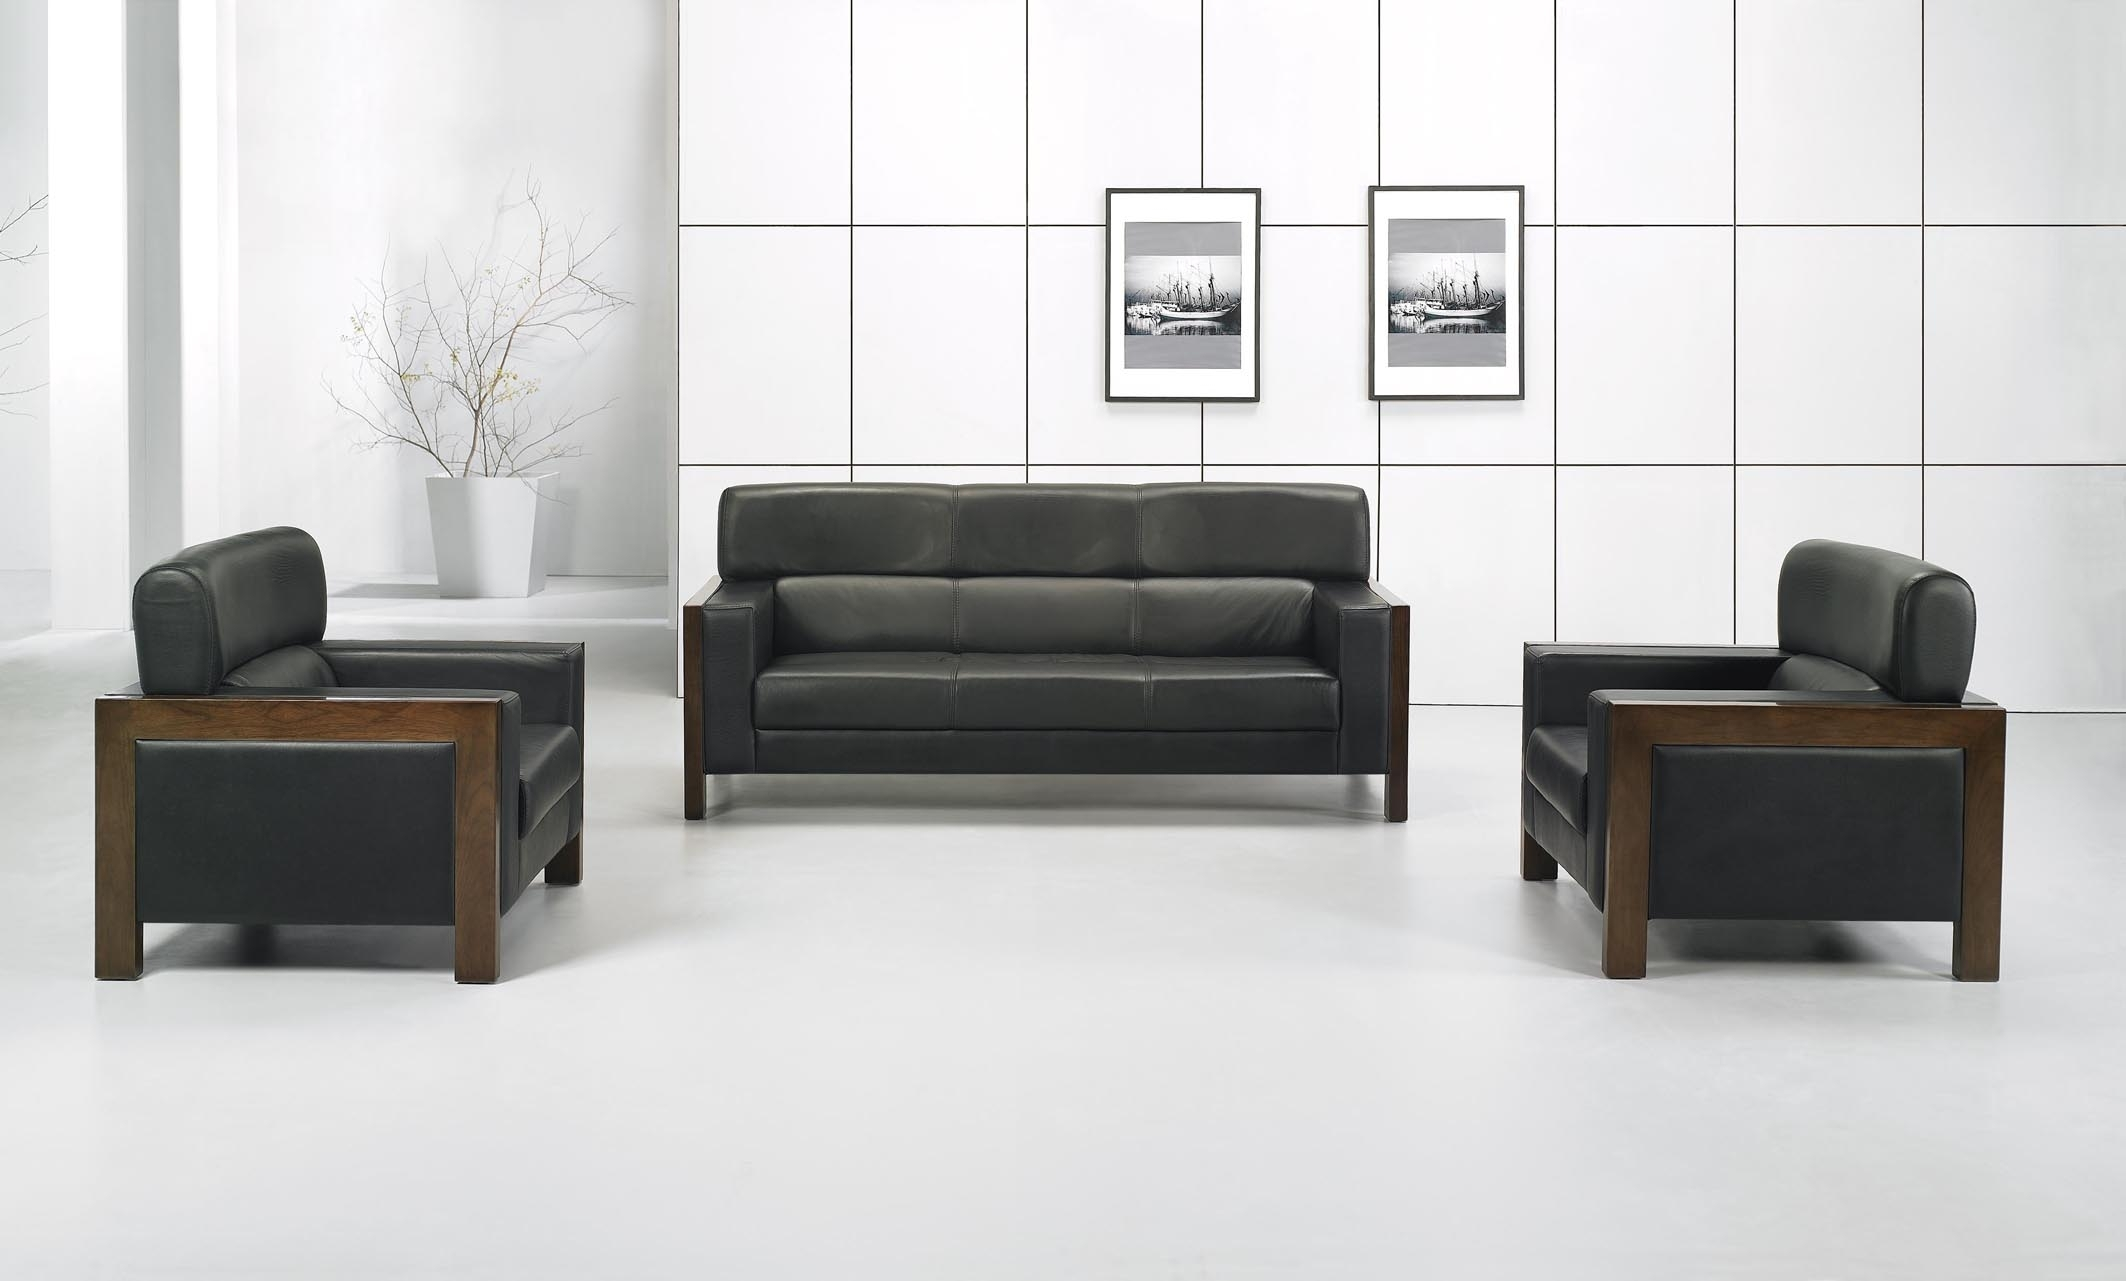 2 Sofa For Office | Carehouse inside Office Sofas (Image 1 of 10)